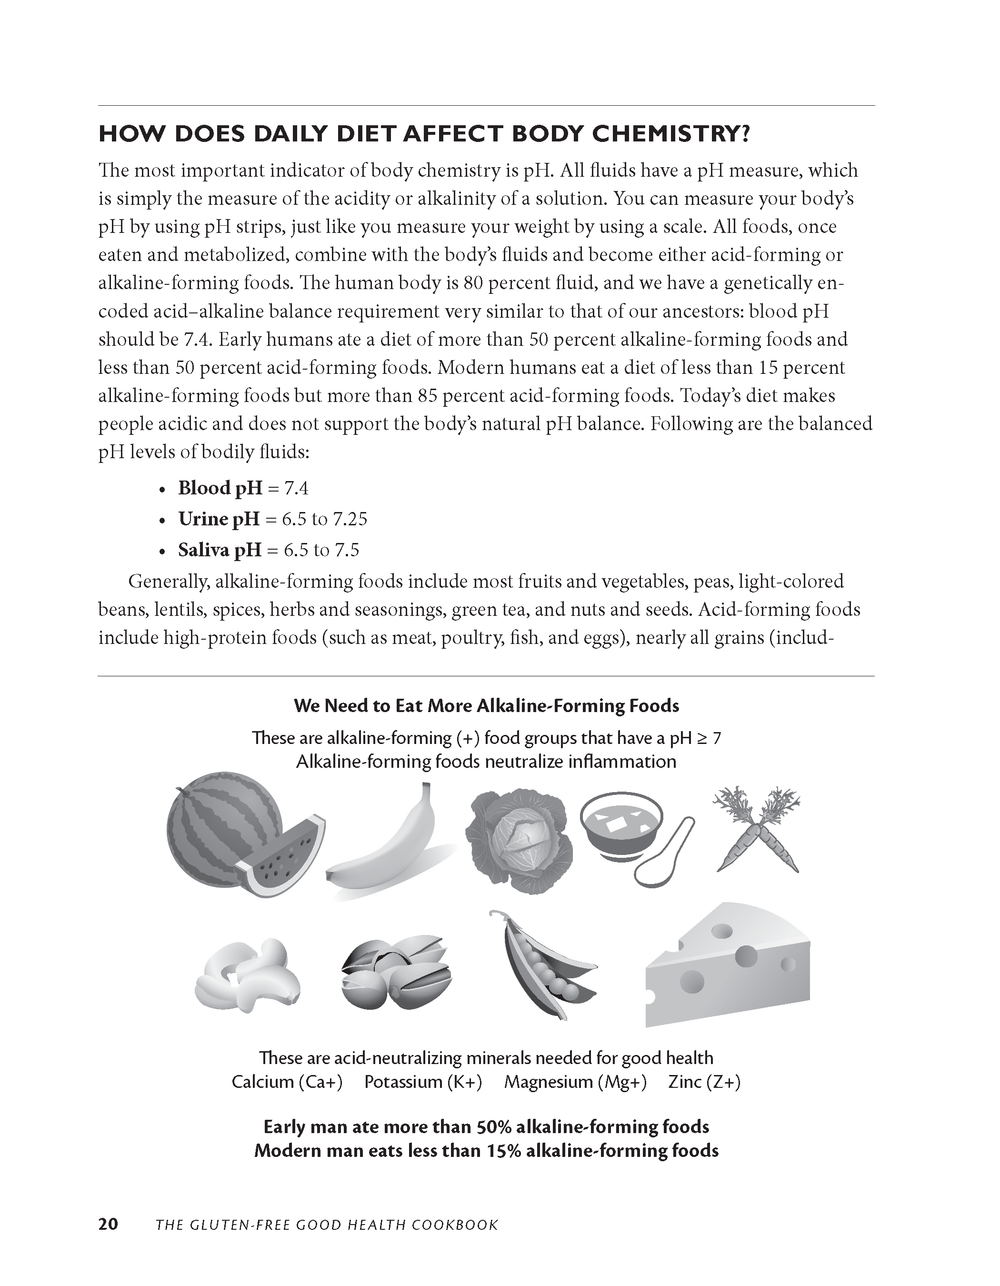 Gluten-Free Good Health Cookbook_Page_09.png